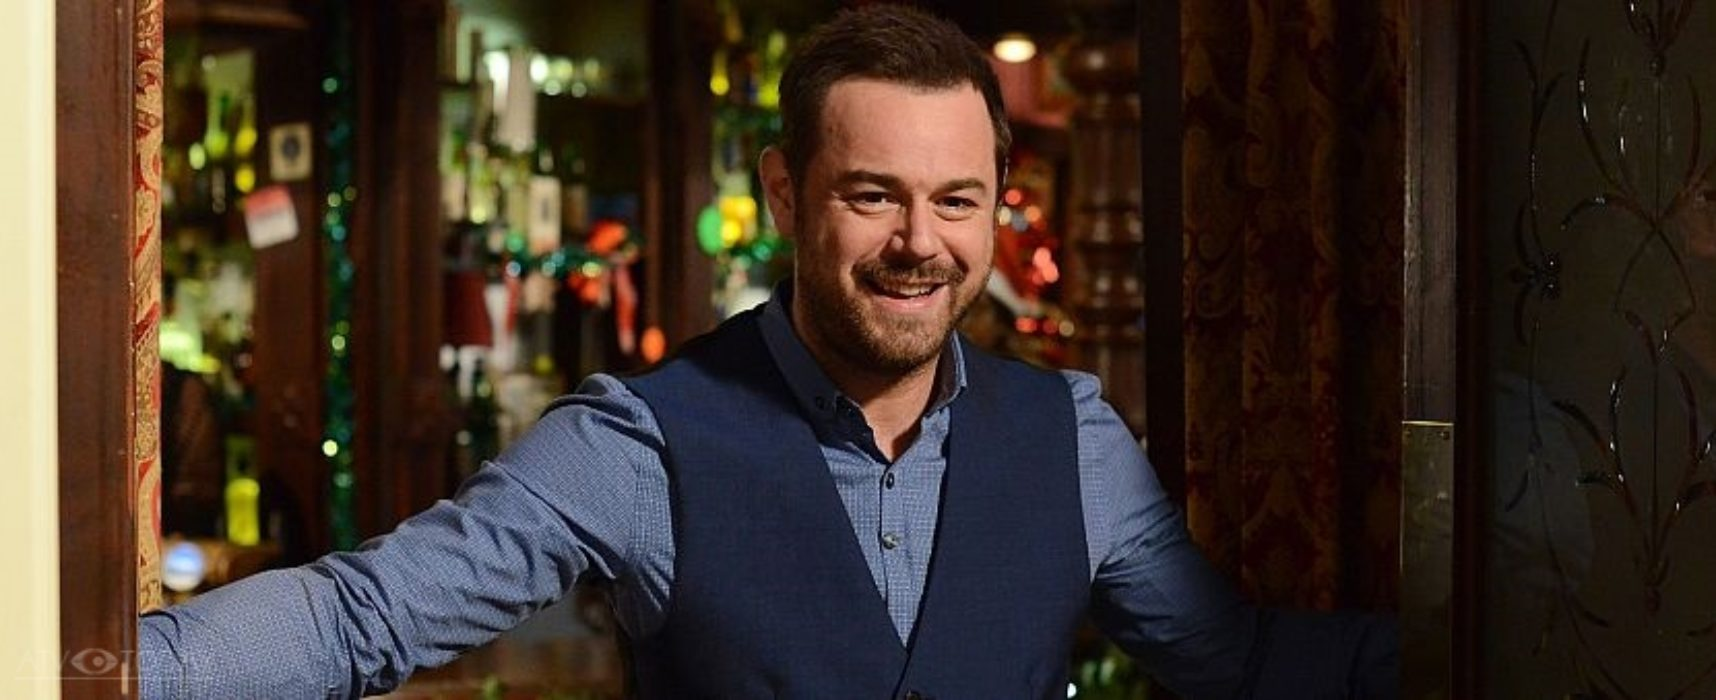 Danny Dyer to present The Wall for BBC One